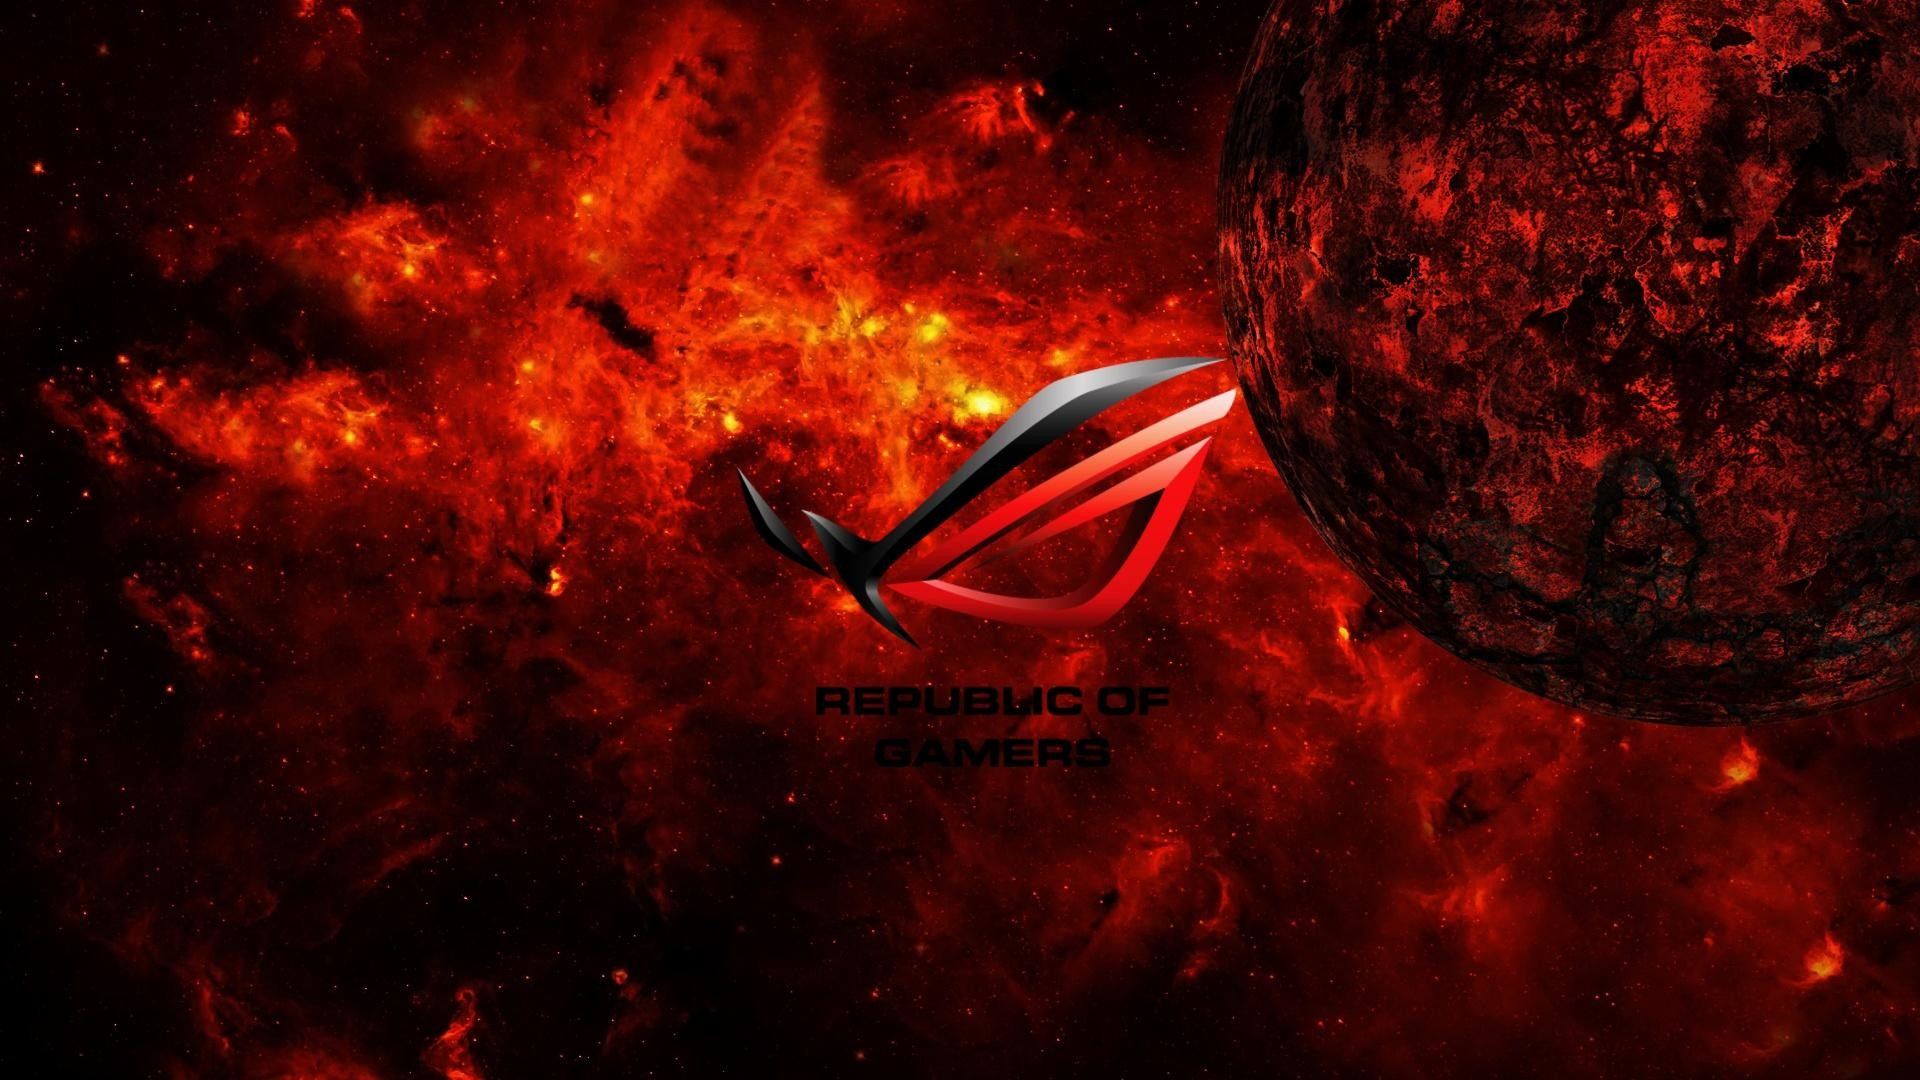 Rog wallpaper full hd 85 images - Asus x series wallpaper hd ...